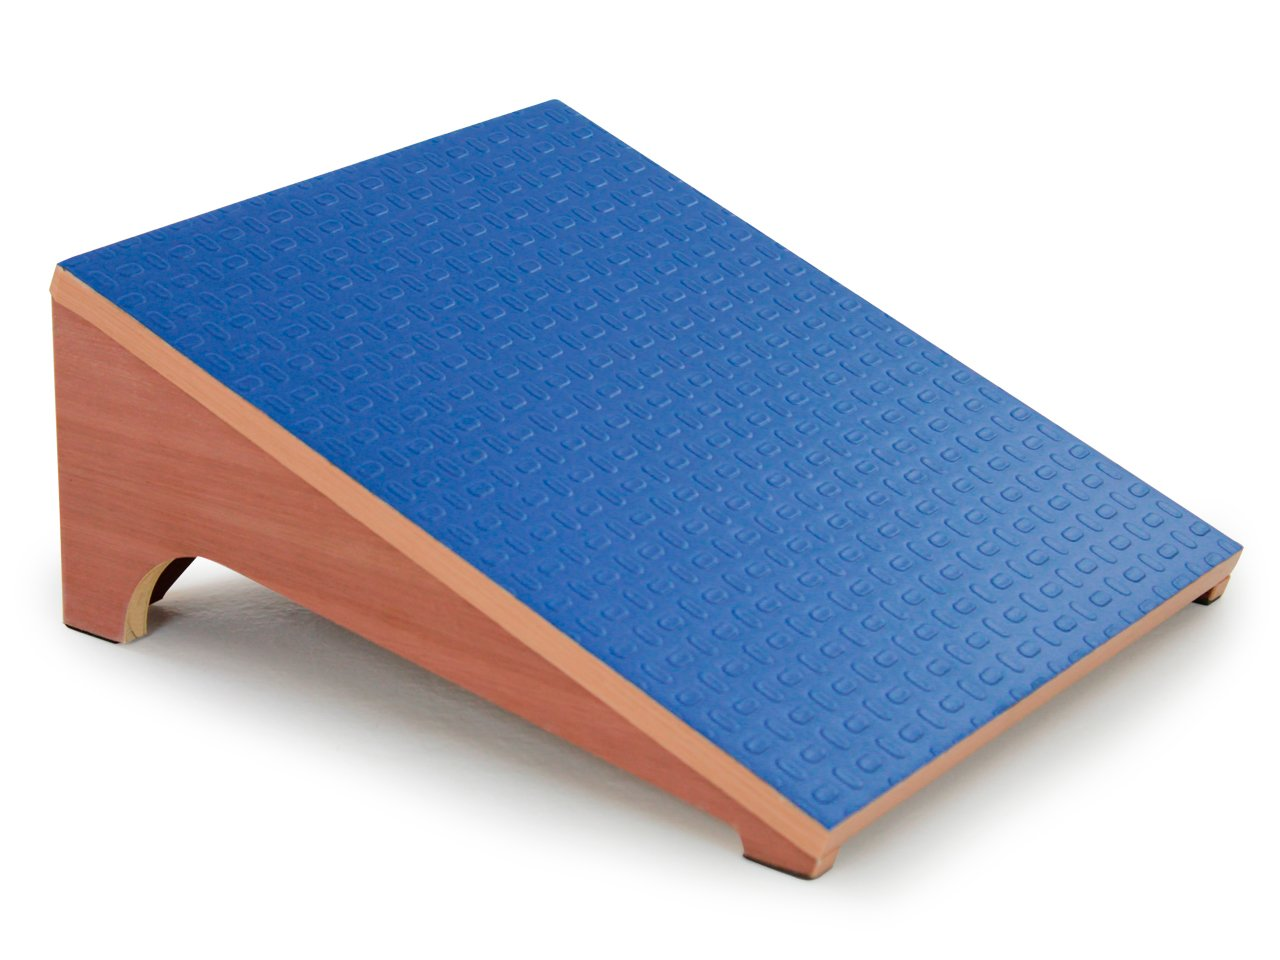 3B Scientific Eucalyptus Wood Slant Board for Controlled Stretching, 15'' Length x 14'' Width x 6-1/2'' Height by 3B Scientific